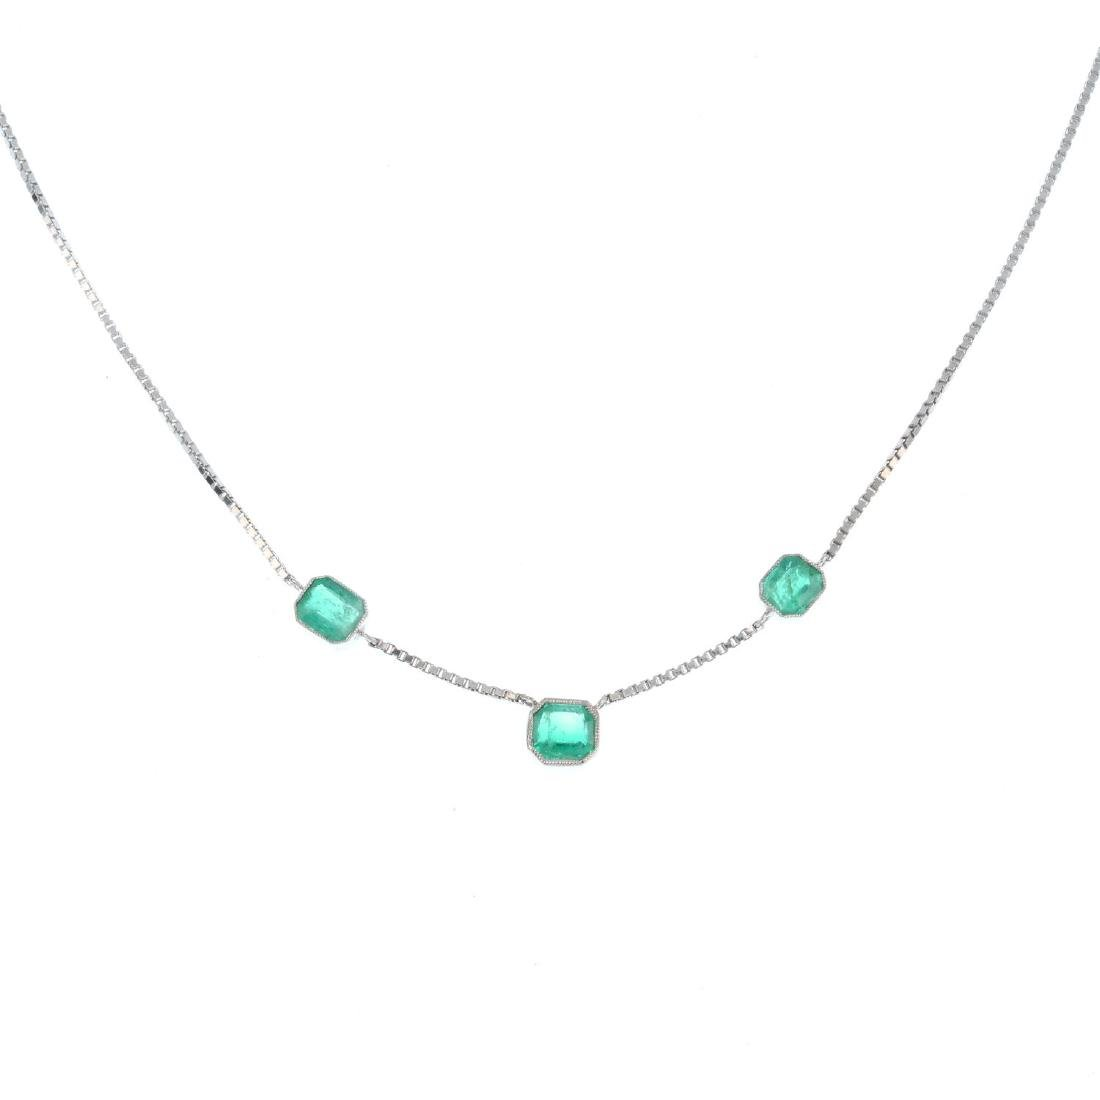 An emerald necklace. Designed as a series of